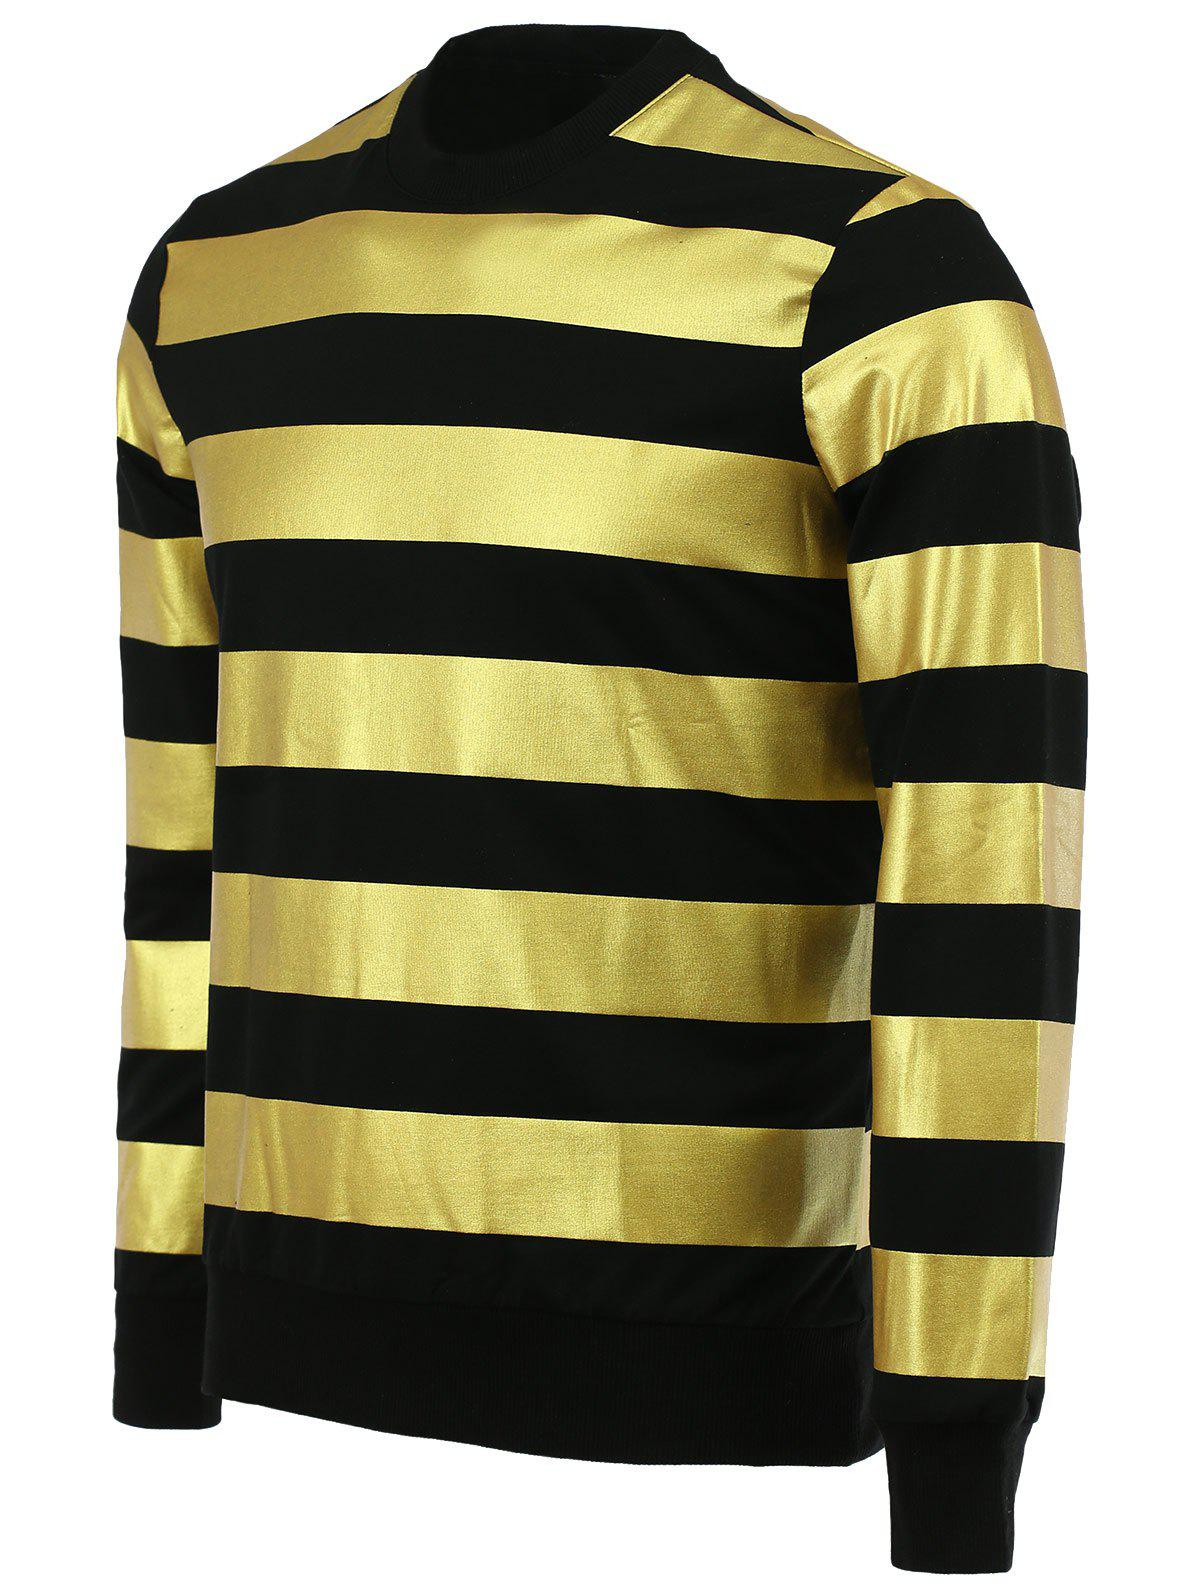 Fashion Round Neck Color Block Stripes Pattern Slimming Men's Long Sleeves Sweatshirt - BLACK XL